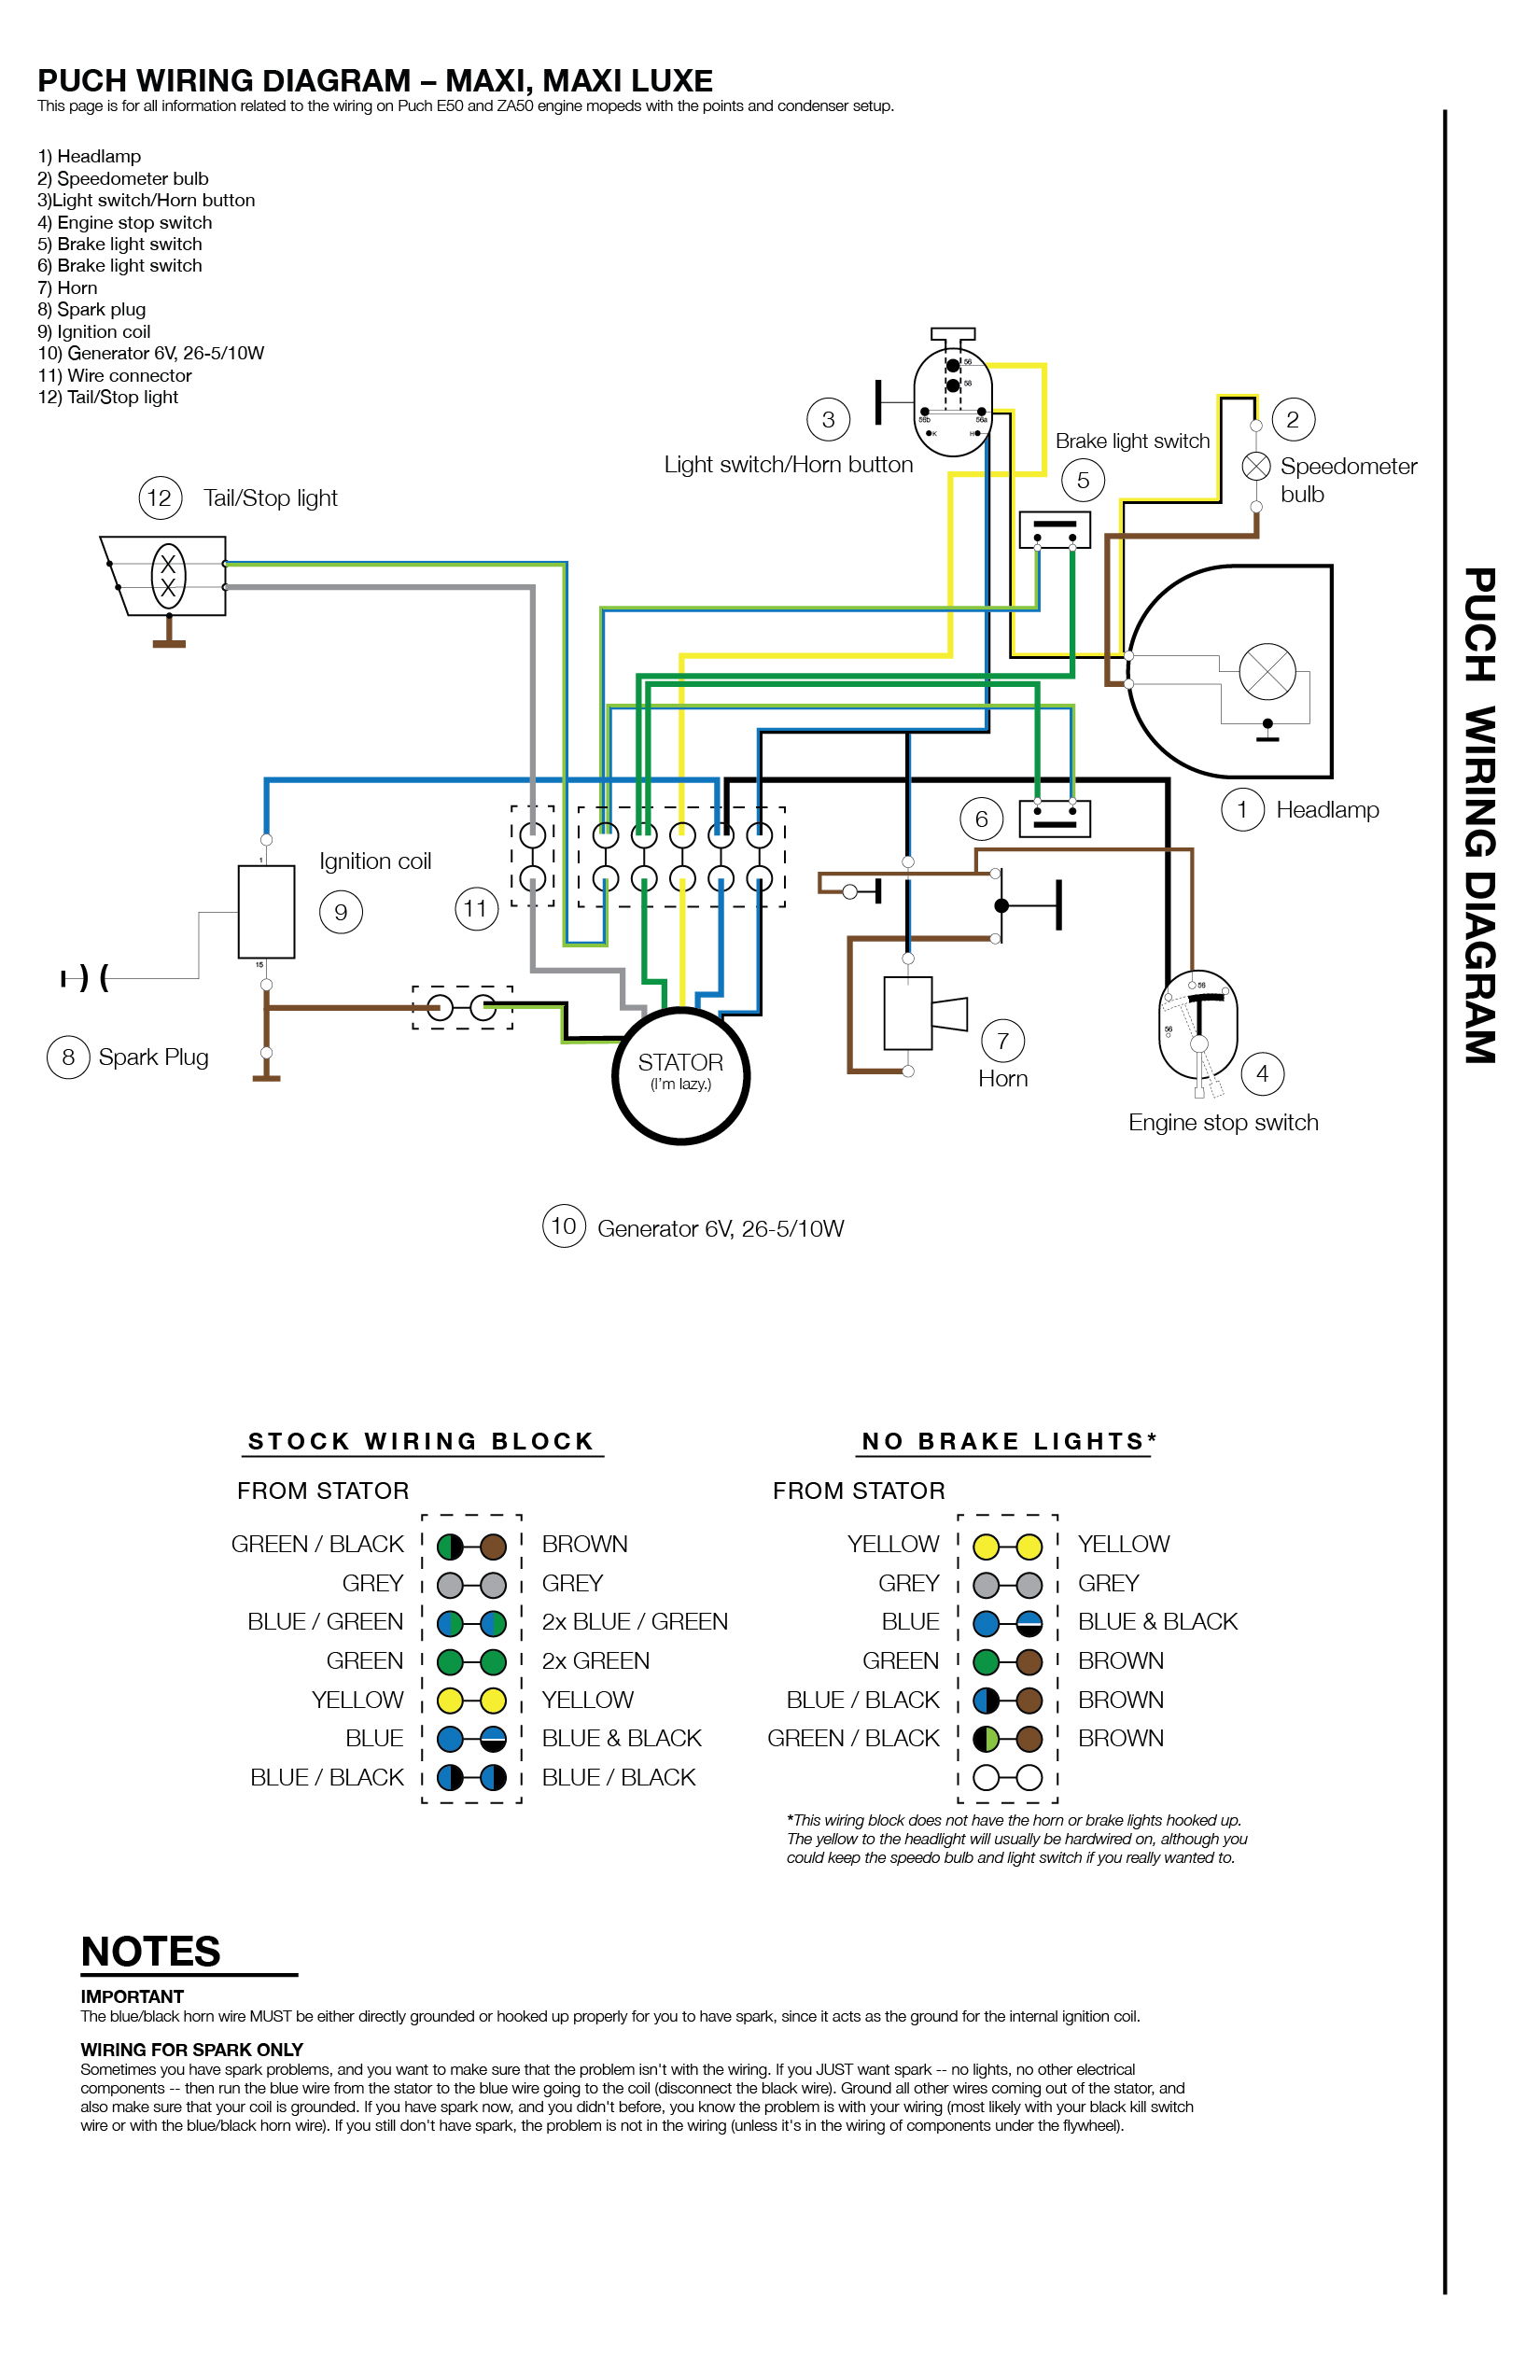 moped diagram wiring diagram libraries puch wiring moped wikipuch wiring 02 jpg